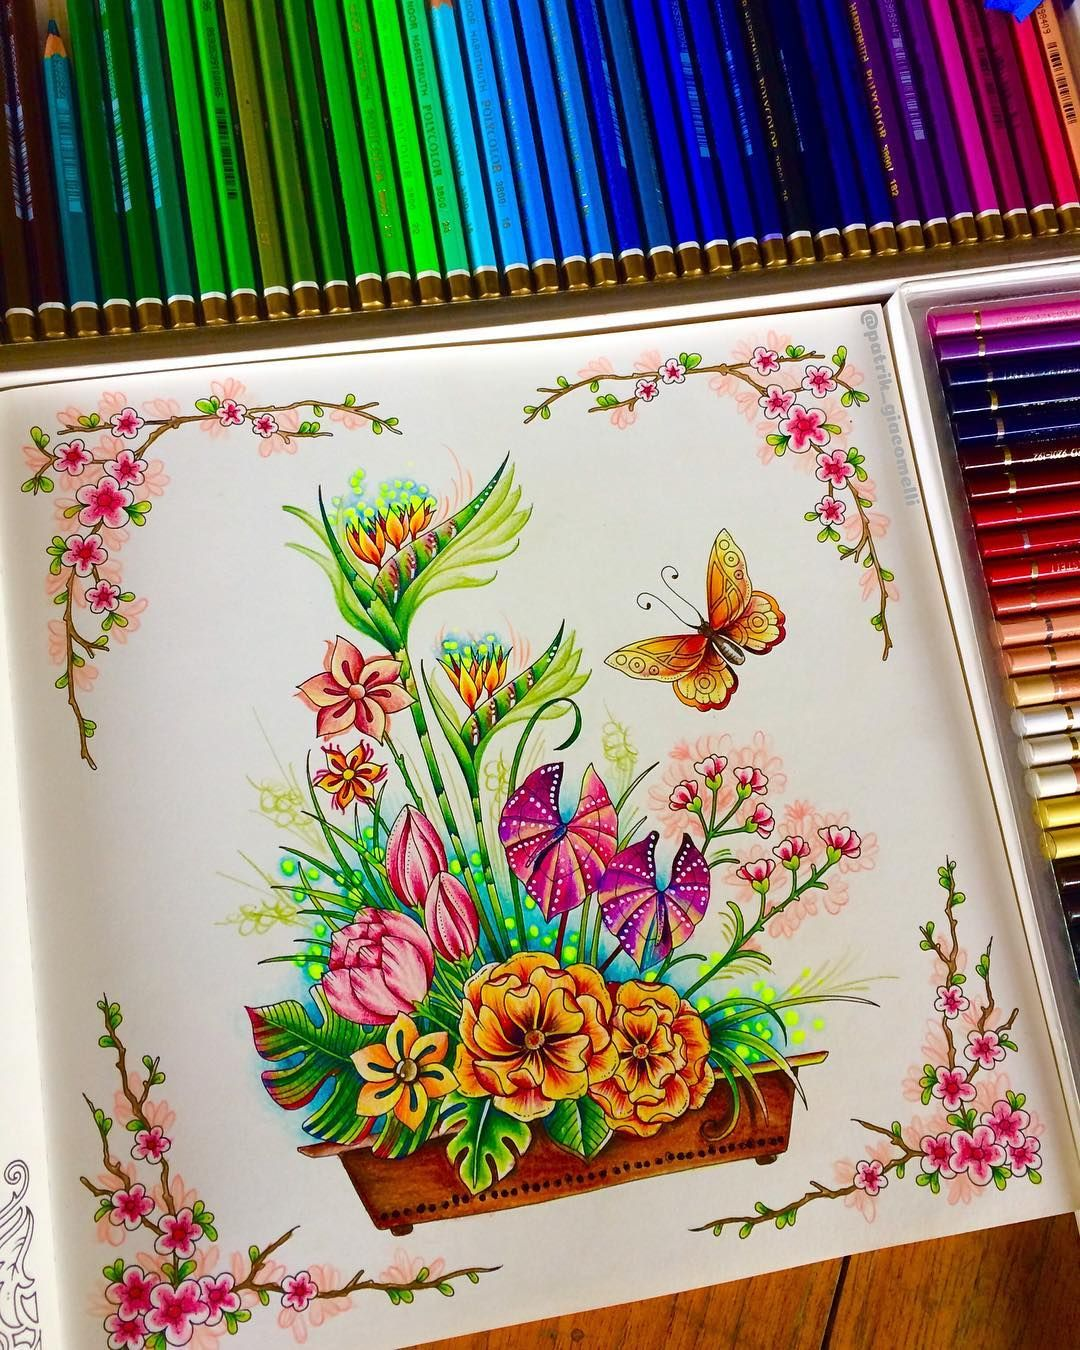 13 World of Flowers - Johanna Basford Completed pages ideas